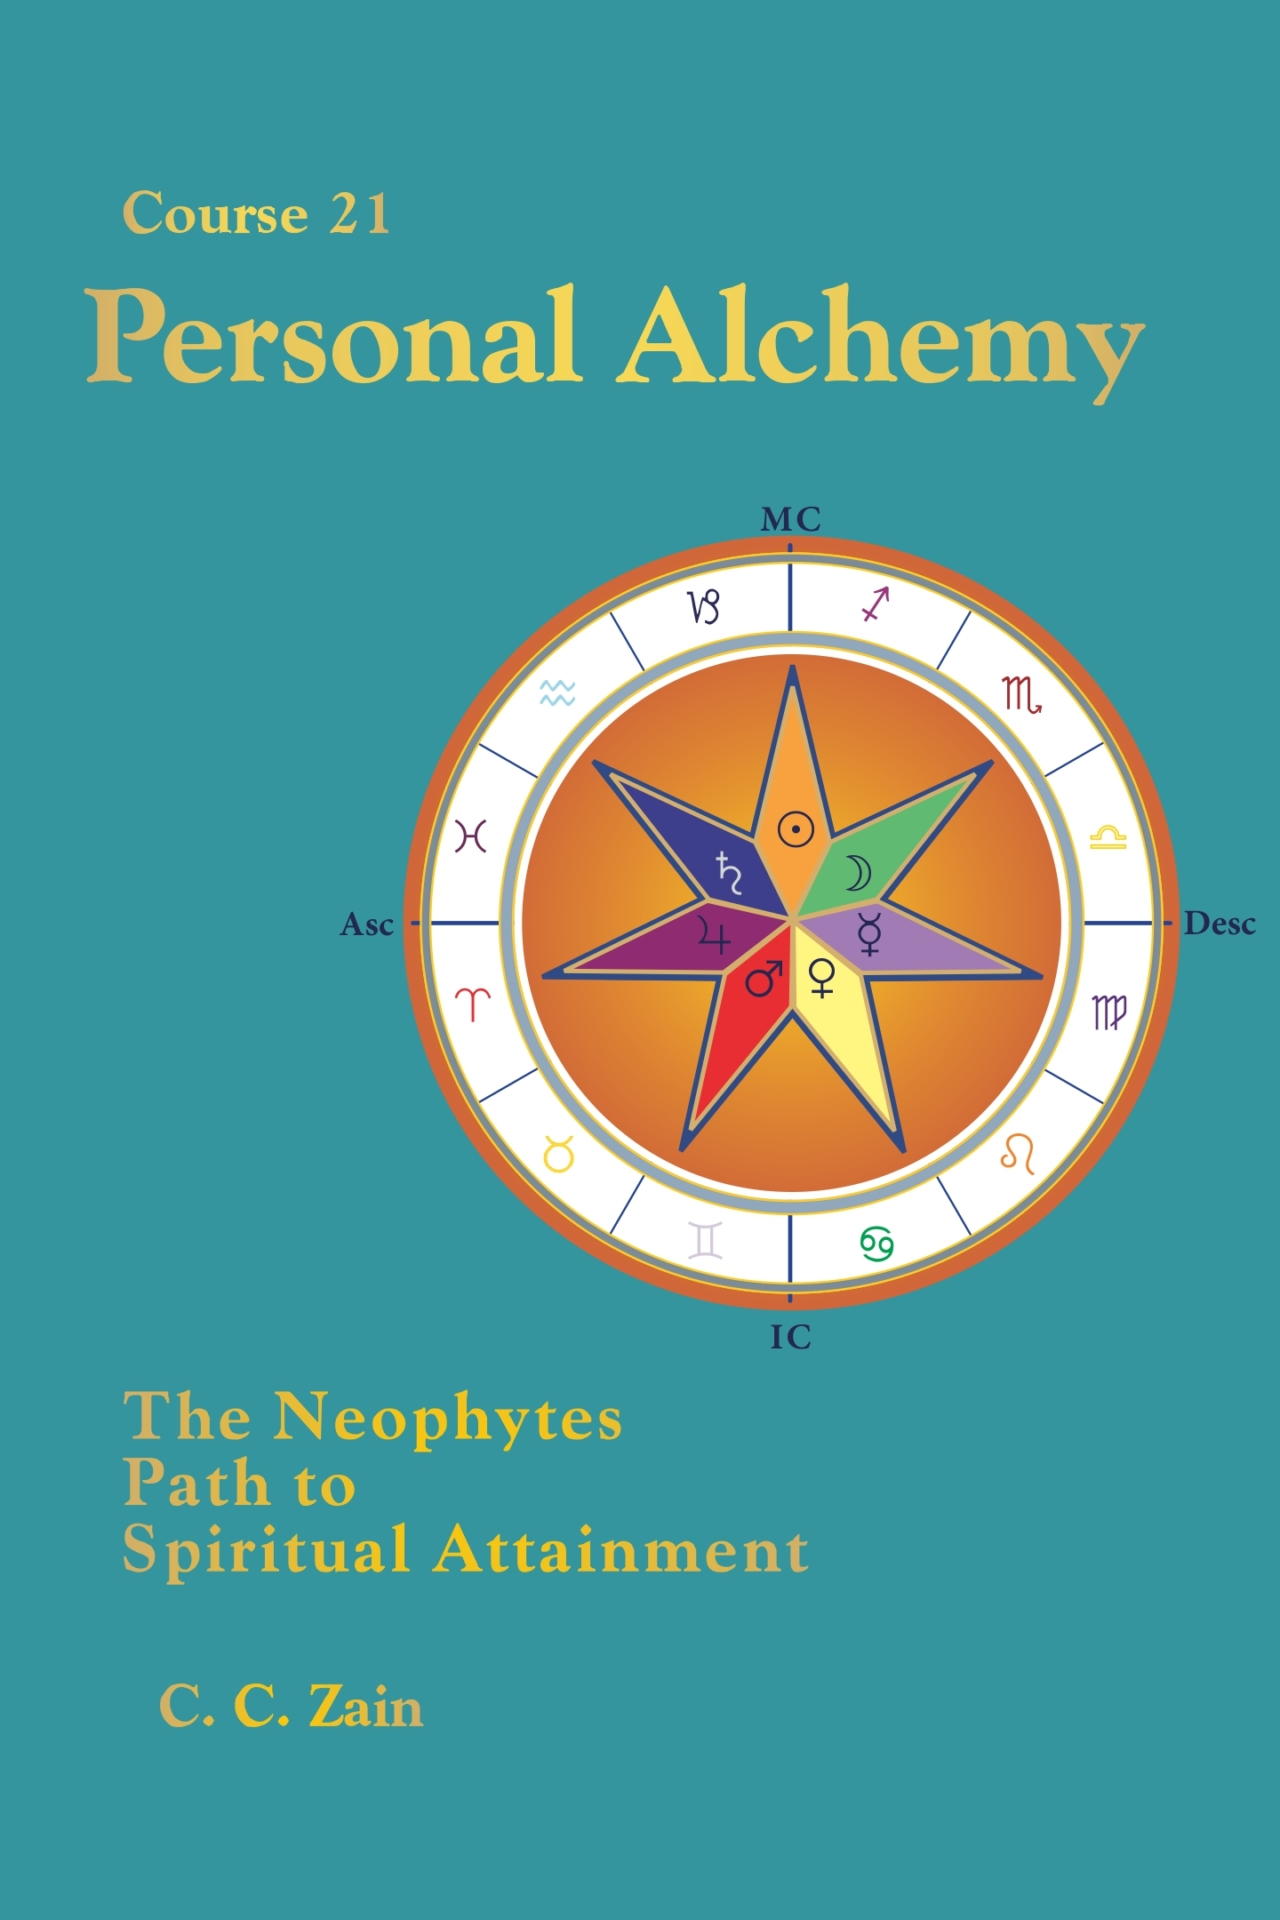 https://study.academyofhermeticarts.org/wp-content/uploads/2020/04/21_Personal_Alchemy_eBook_Cover-1280x1920.jpg